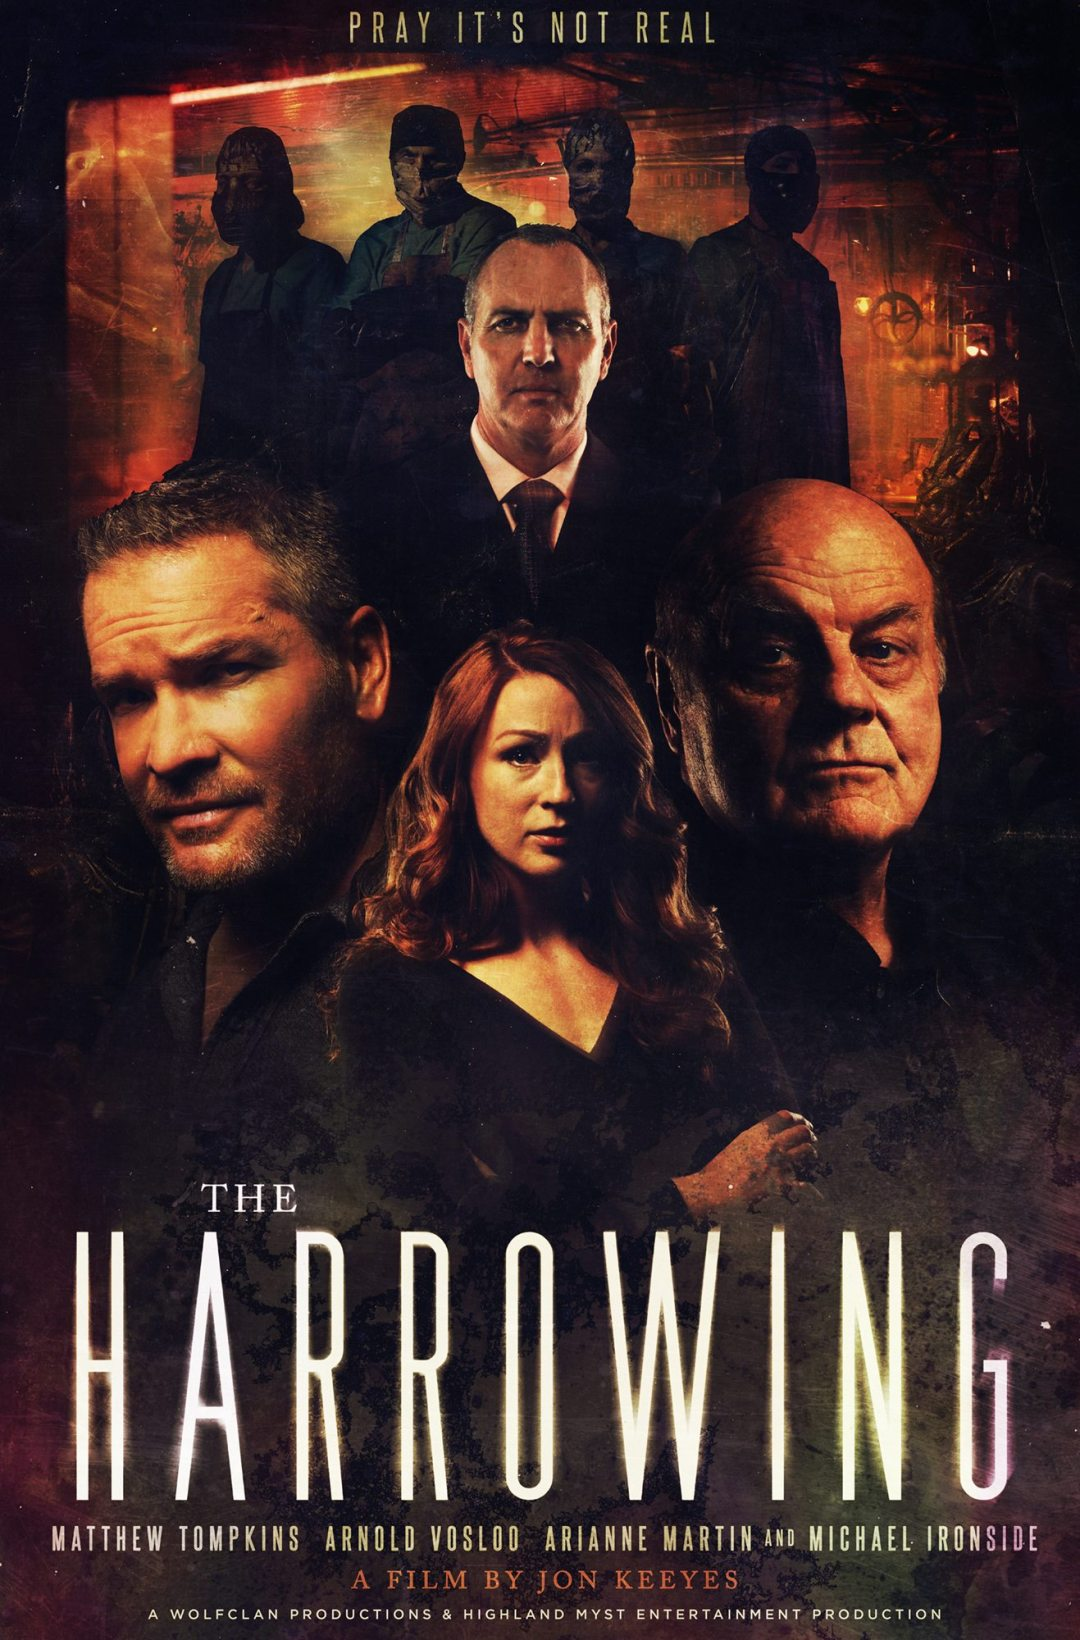 'The Harrowing' with Michael Ironside and Arnold Vosloo